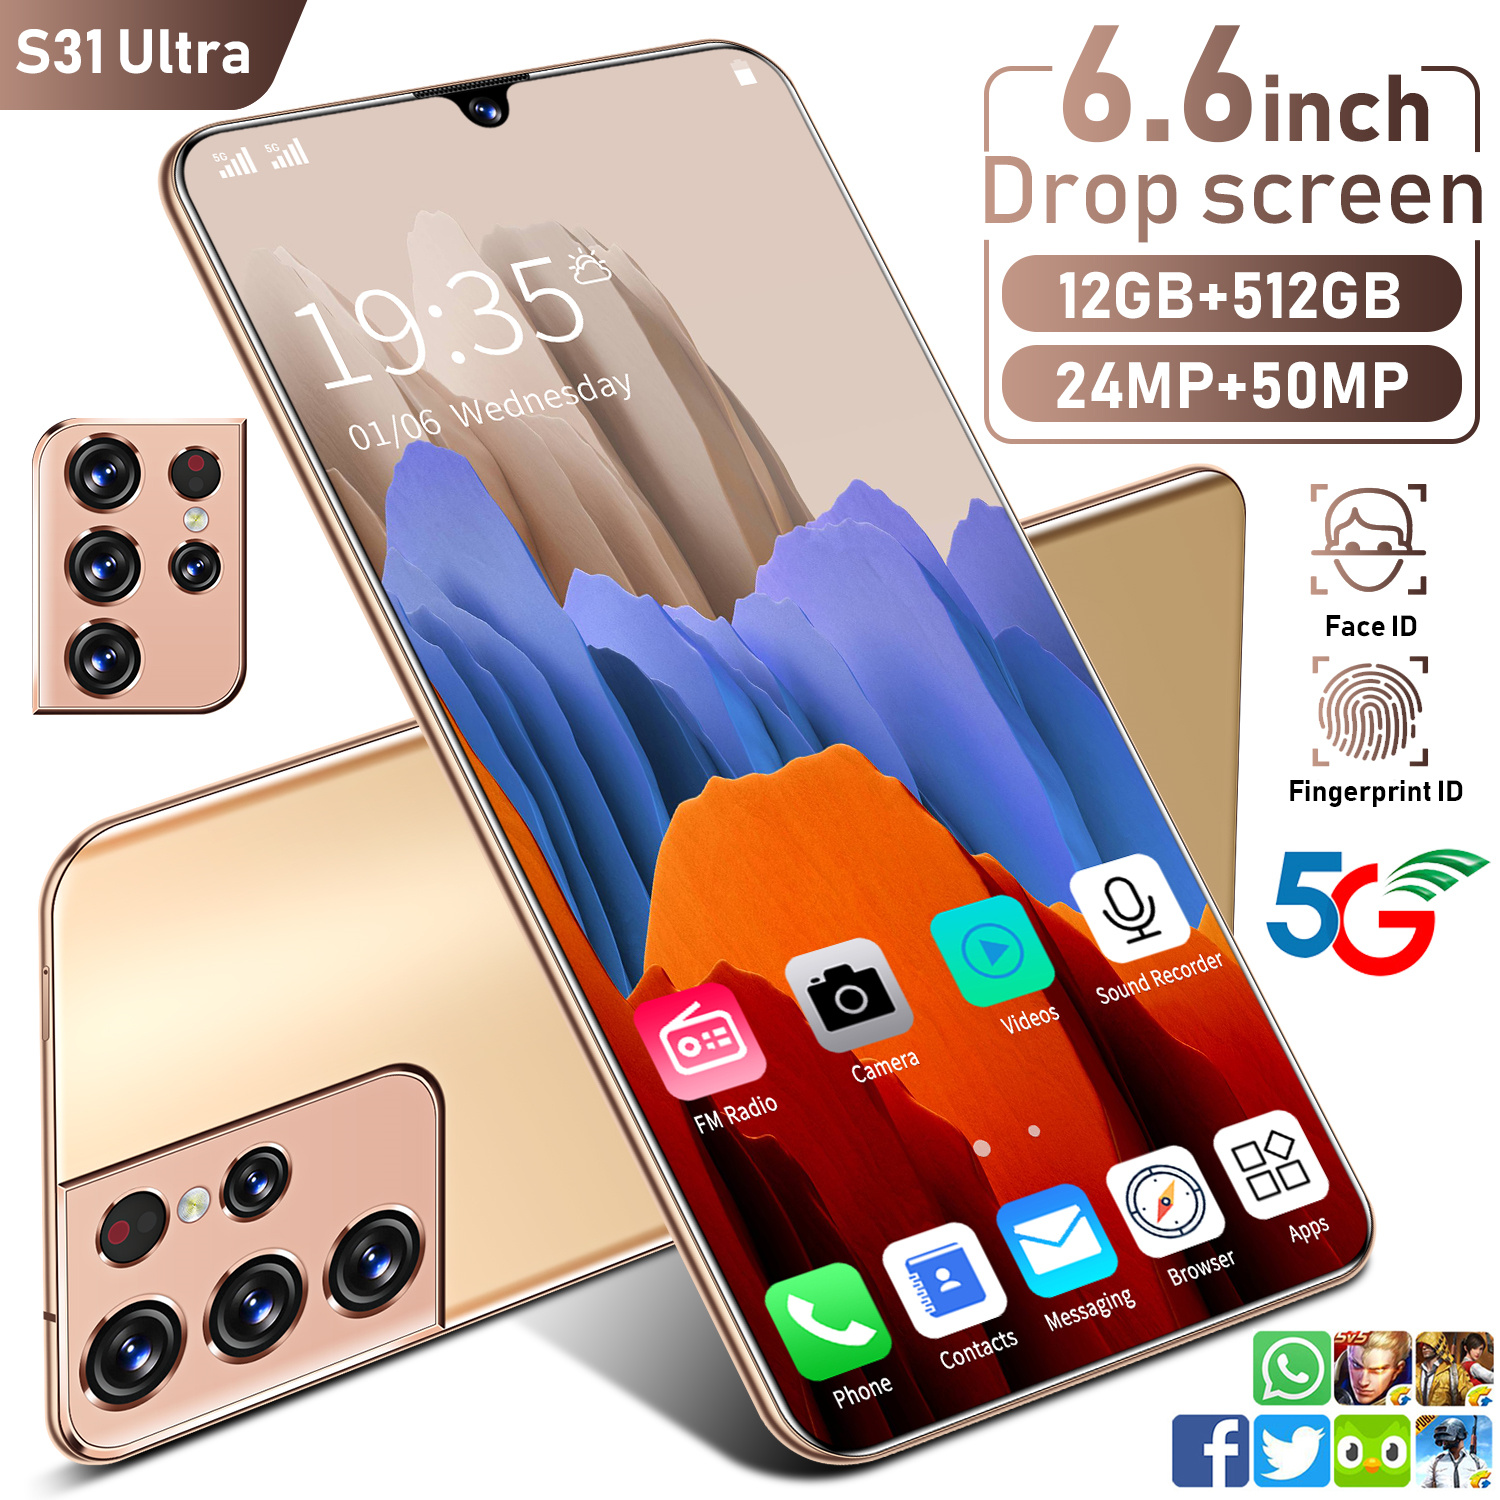 2021 Hot Global Version S31 Ultra 6.6 Inch Smartphone 6000mAh 12+512GB Face ID Fingerprint Unlock Dual SIM GPS 5G Mobilephone